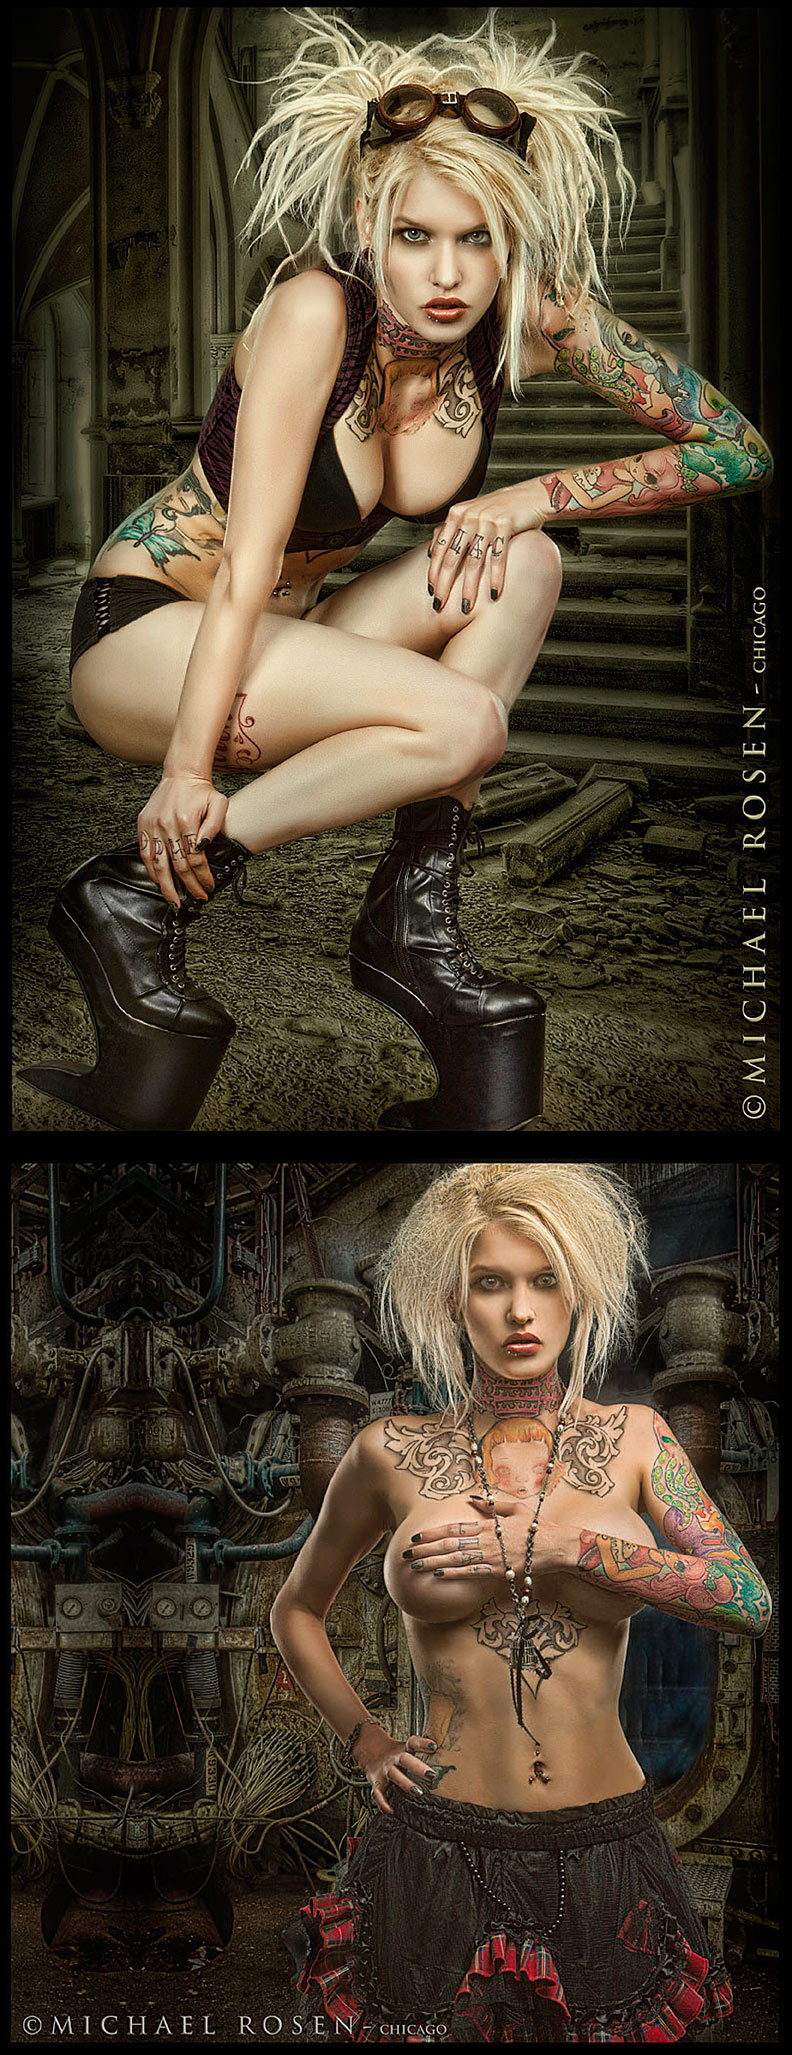 Male and Female model photo shoot of Michael Rosen - Chicago and Alloy Ash in Chicago